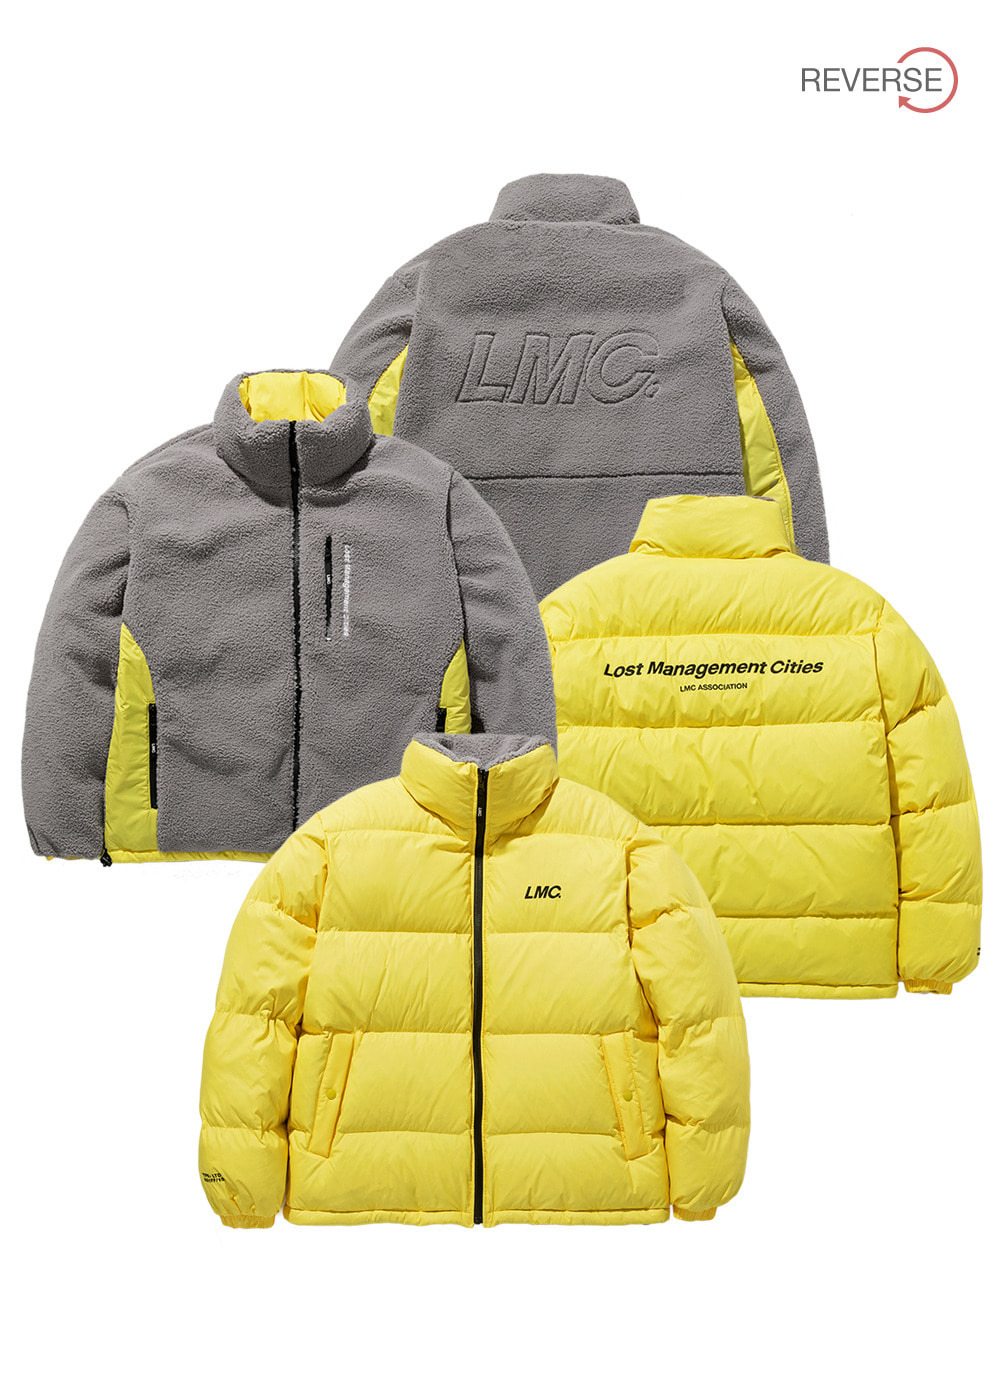 LMC BOA FLEECE REVERSIBLE DOWN PARKA yl/gy